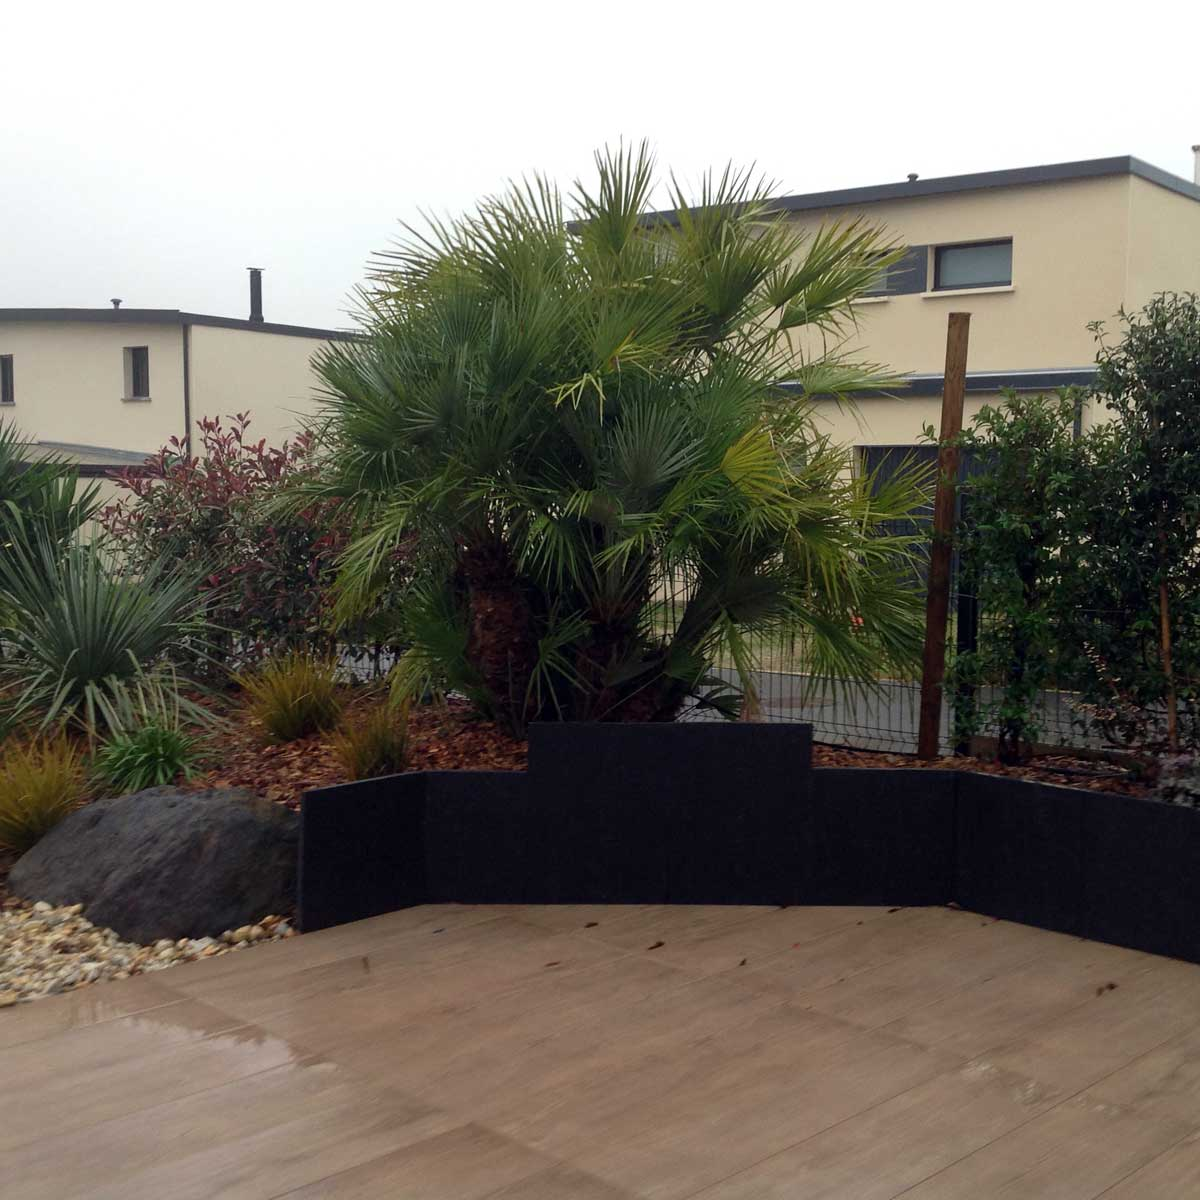 crearoc-paysages-amenagement-terrasses11